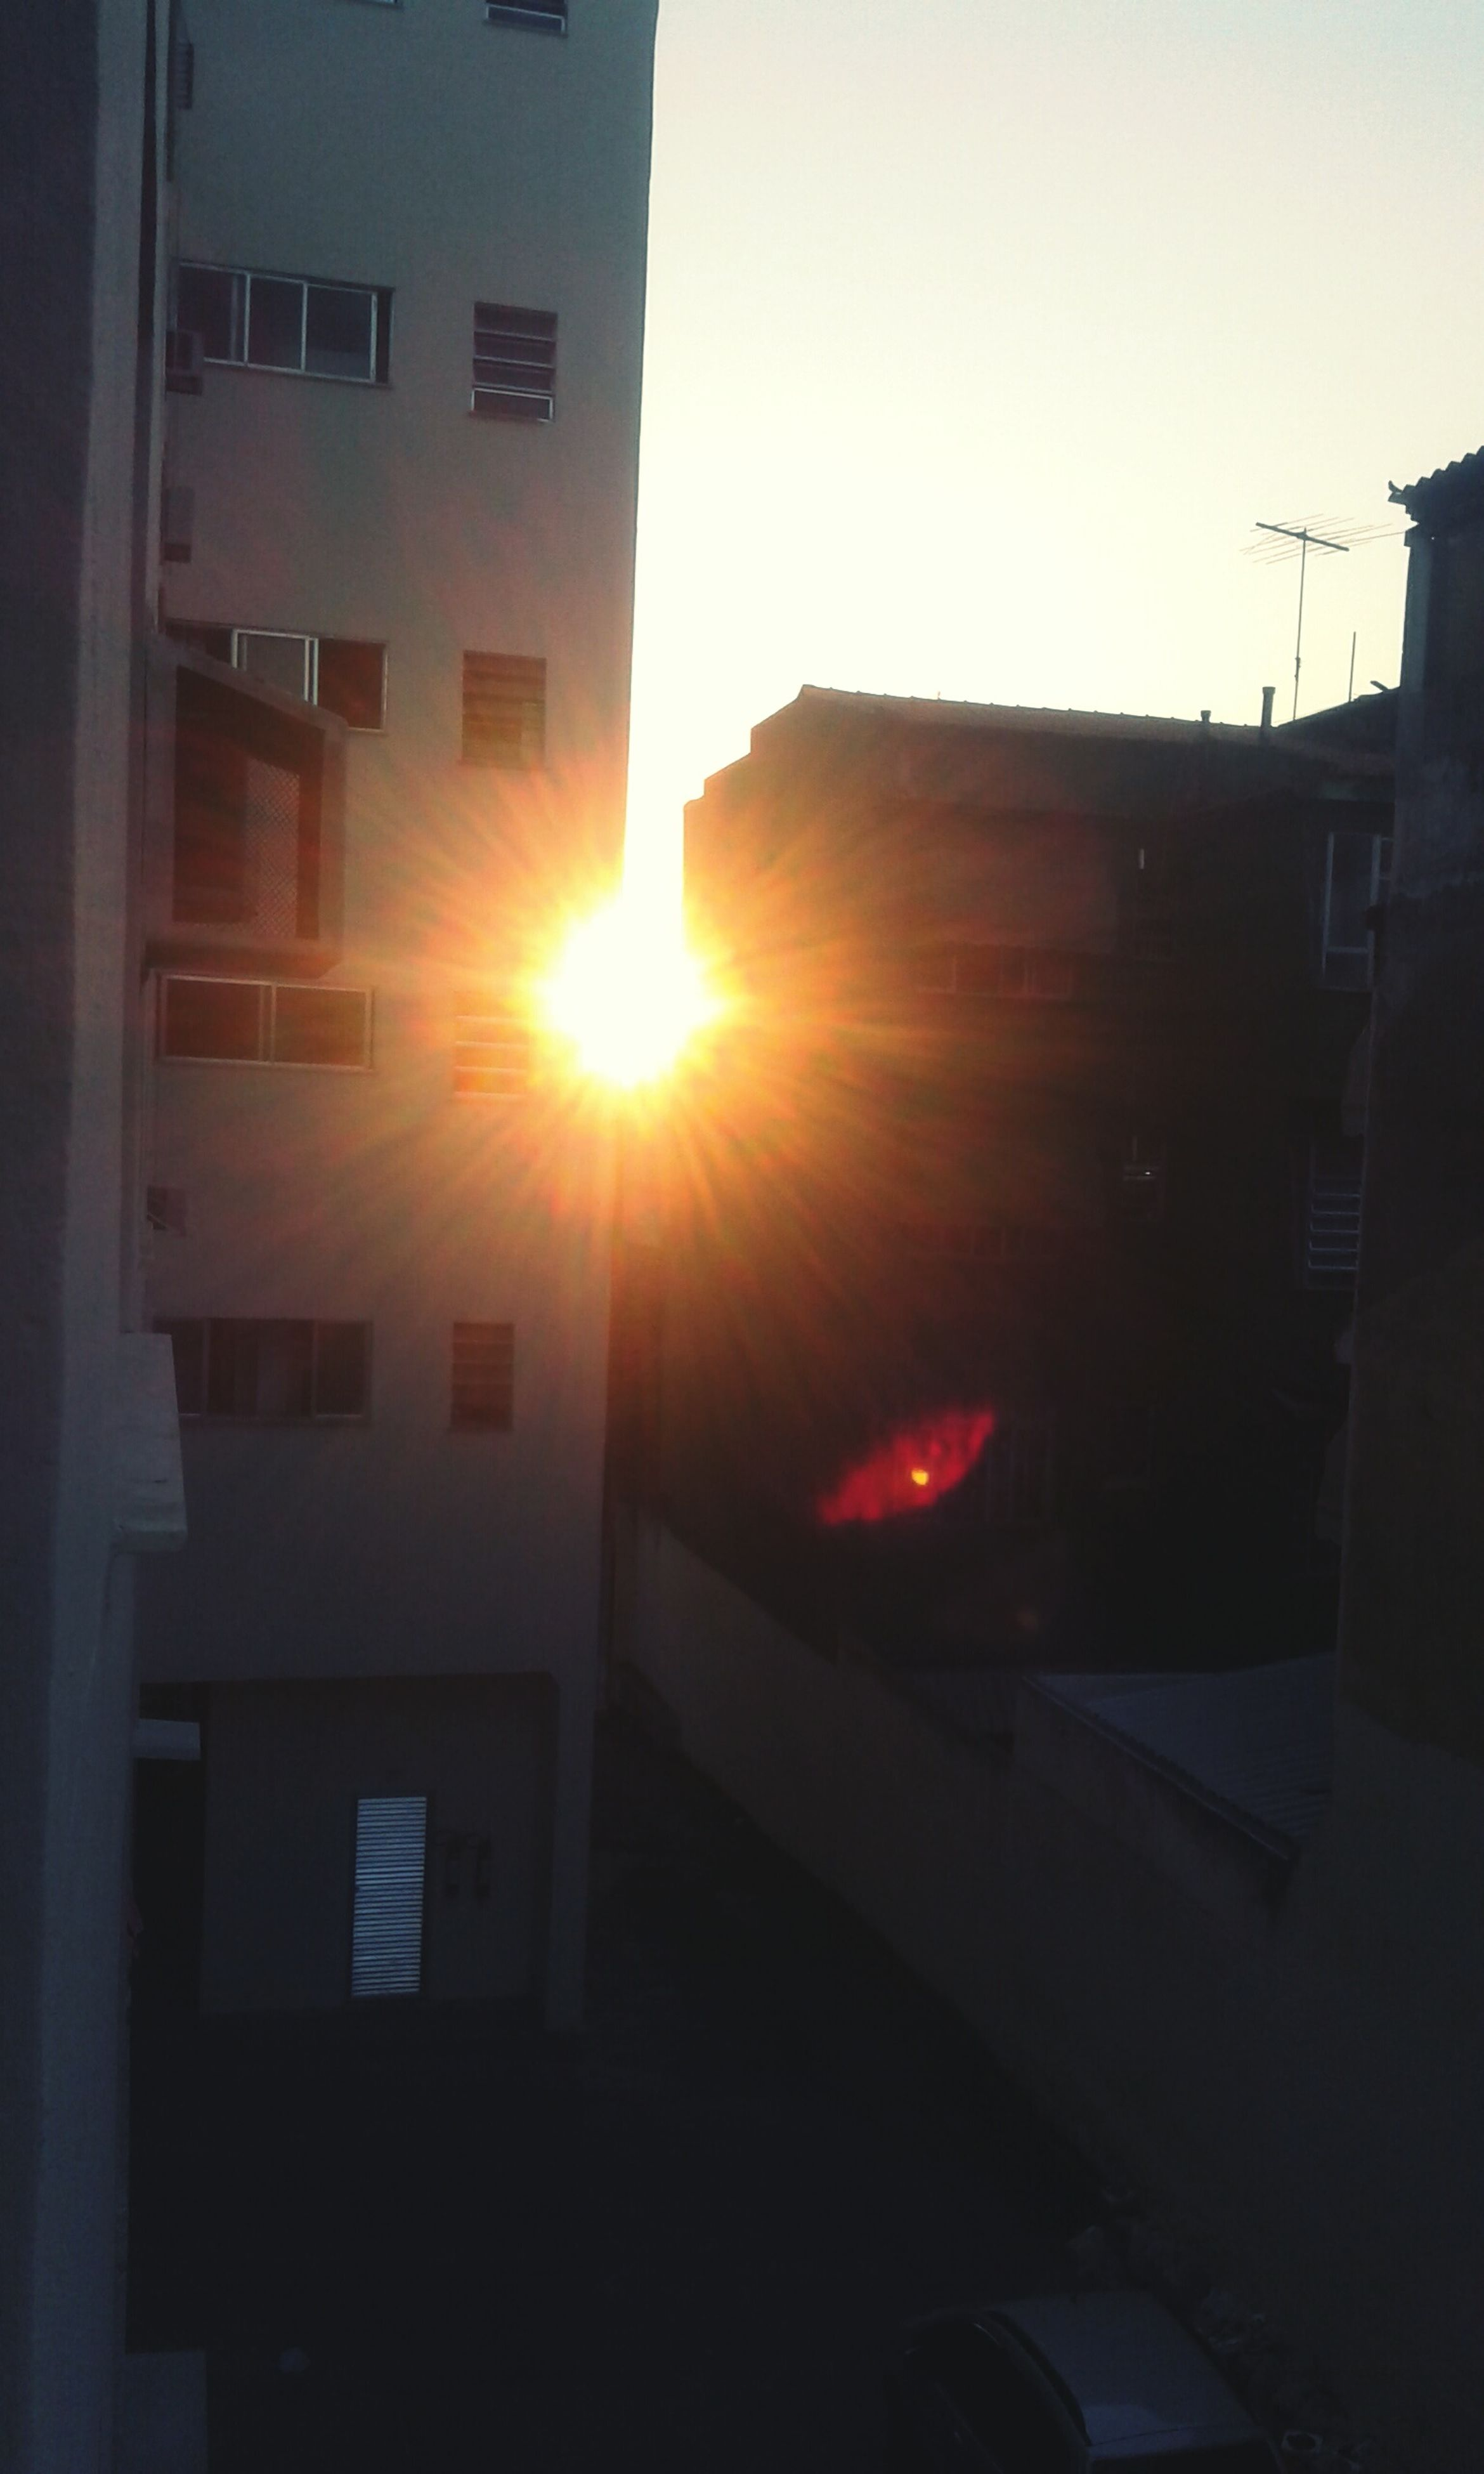 sun, built structure, architecture, building exterior, sunlight, sunbeam, sunset, house, lens flare, window, residential structure, clear sky, residential building, building, silhouette, city, outdoors, no people, bright, day